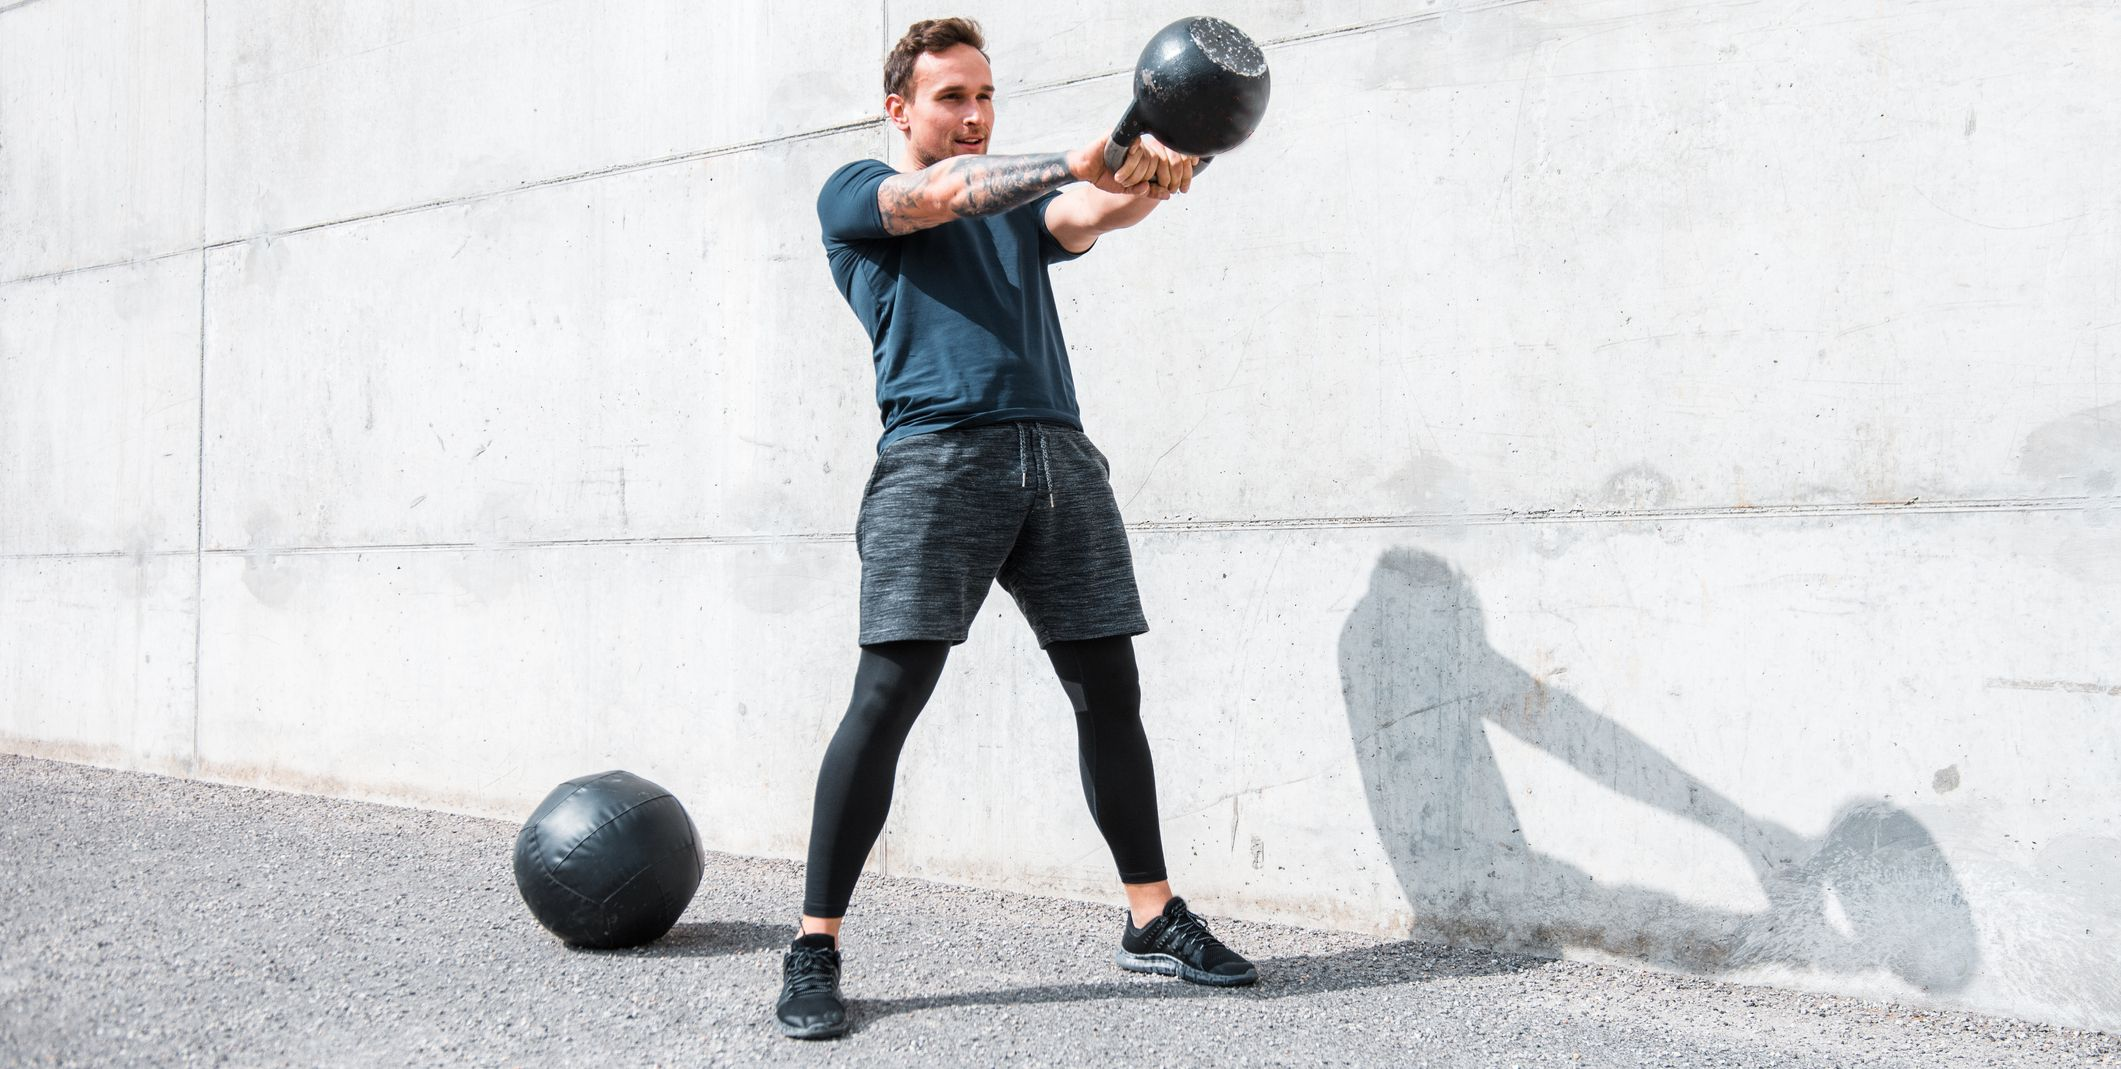 Man exercising with a kettlebell outdoors